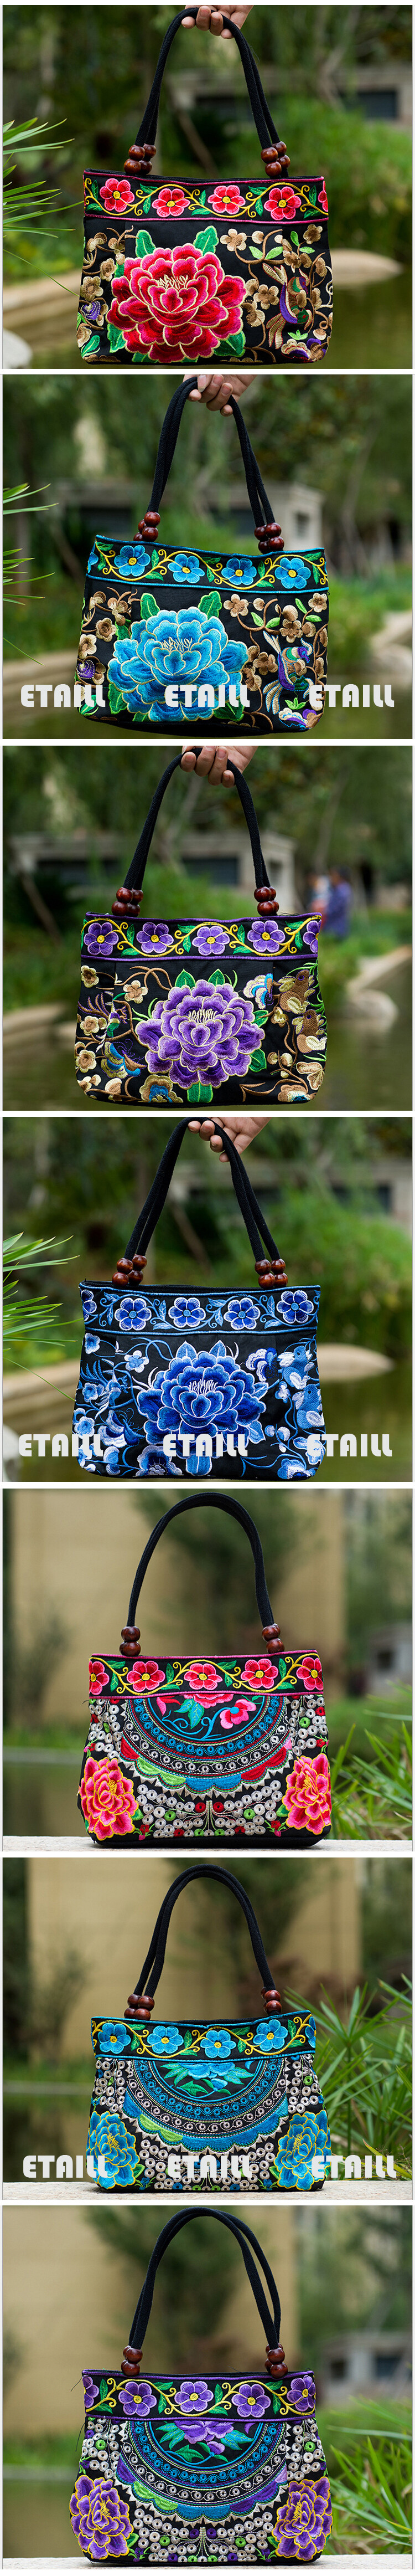 embroidered handbag tote bag